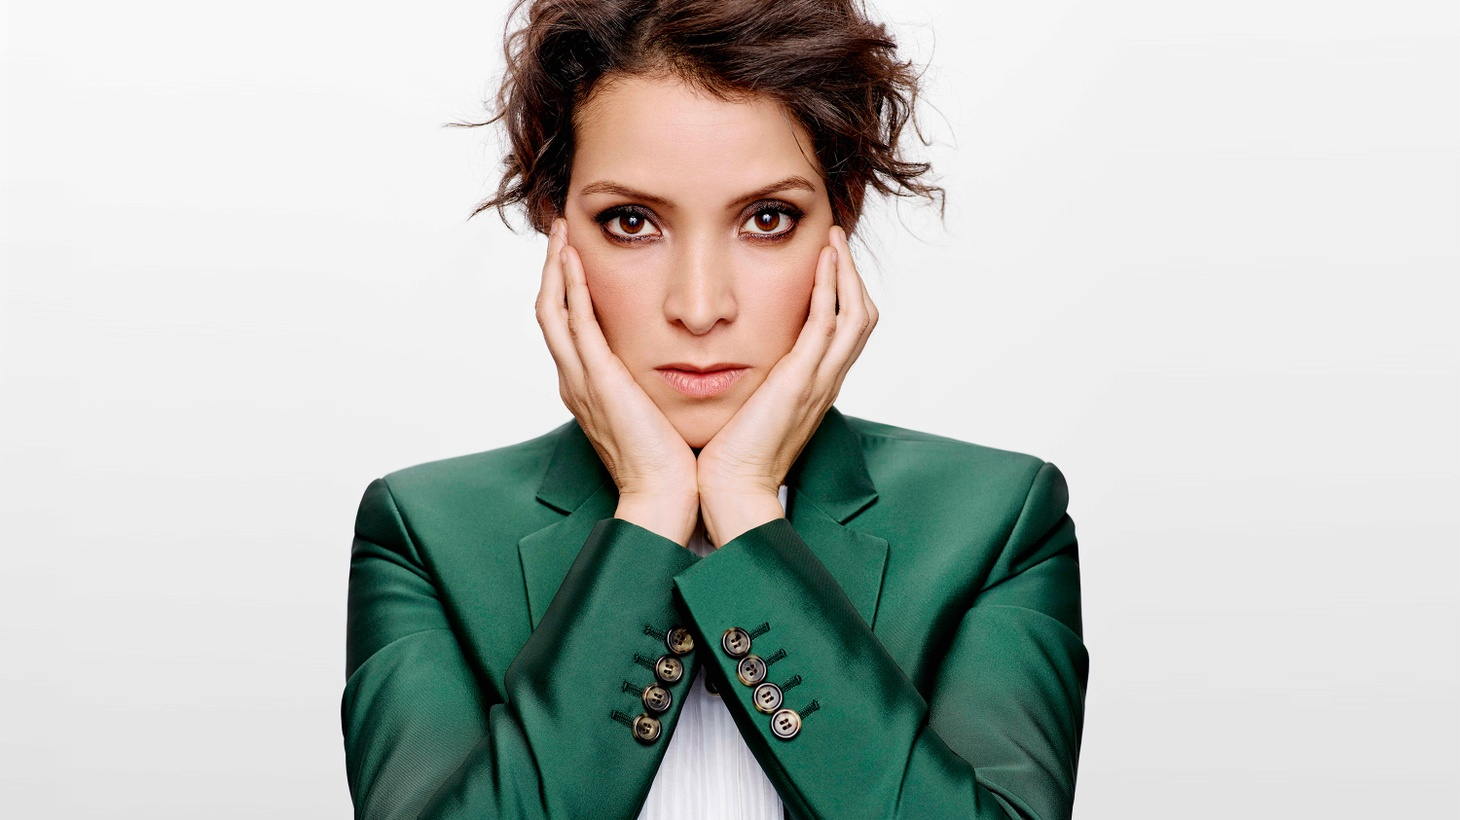 Born in Guatemala and based in Los Angeles, Gaby Moreno is already the recipient of a Latin Grammy. Now she's awaiting the verdict on Best Latin Pop Album at this year's Grammy Awards.